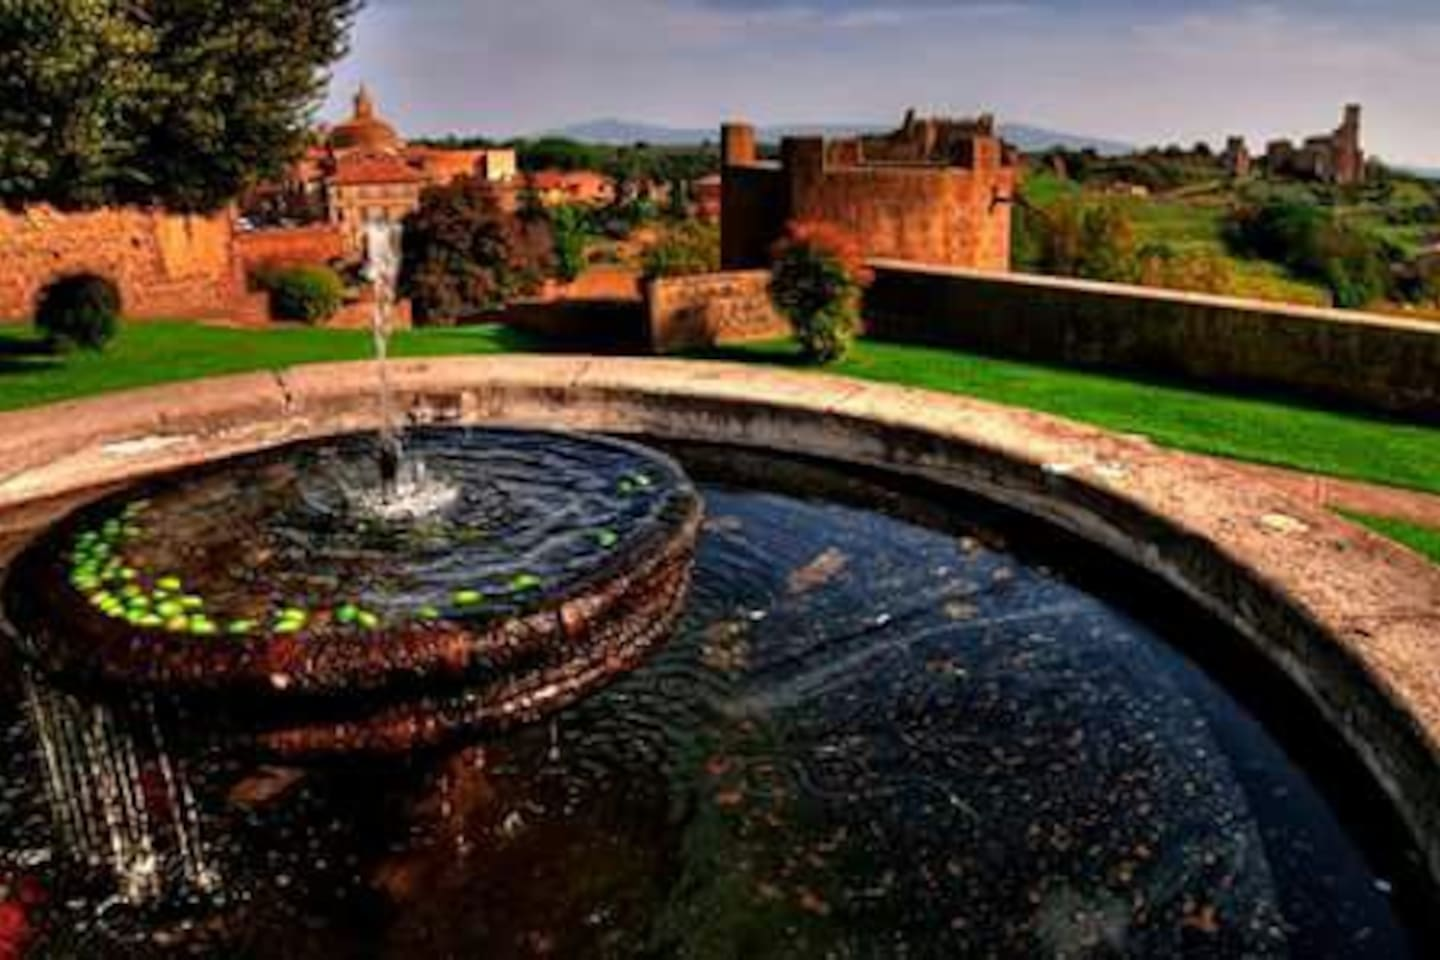 Tuscania Torre di Lavello Park open to the public for picnics and events.